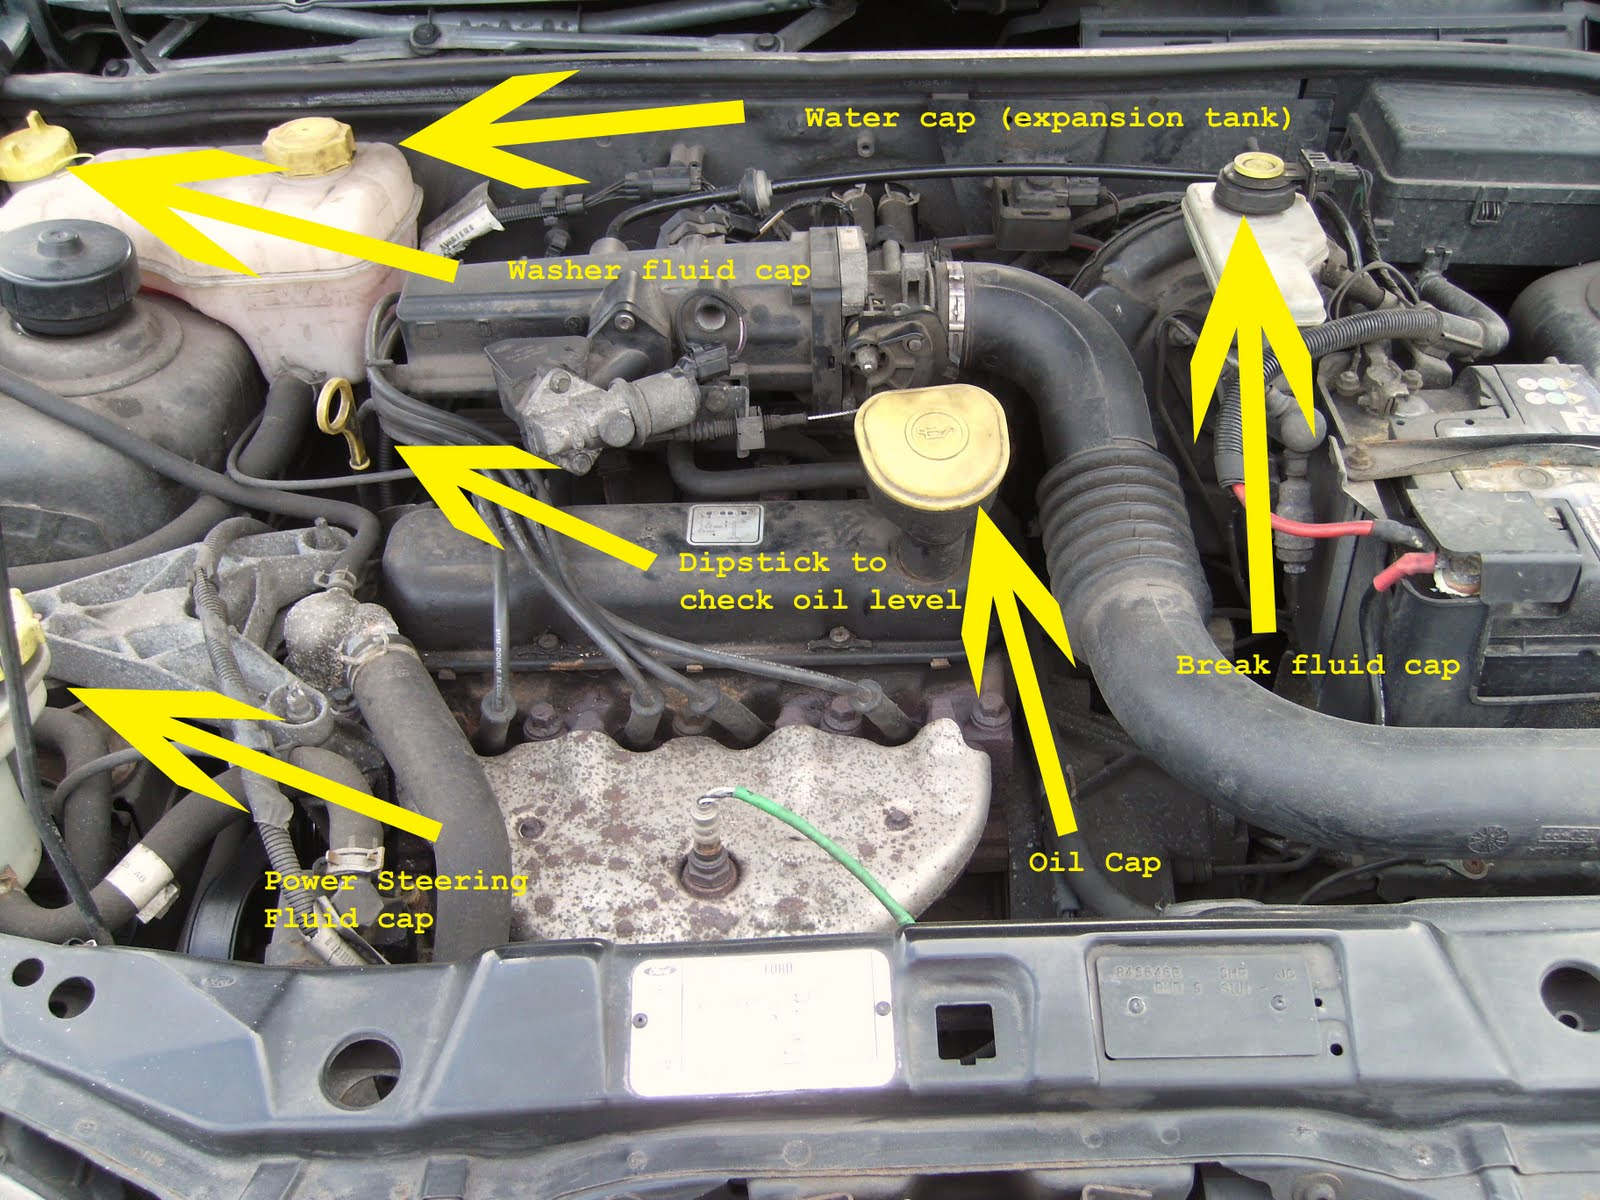 Pcv Valve Location Chevy Aveo further Chevy Aveo Wiring Diagram further How To Reset Airbag Light On 2005 Chevy Truck Silverado also 7qqil Chevy Impala Event Data Recorder Located as well Dodge Journey Starter Location. on 2007 chevy tahoe airbag sensor location